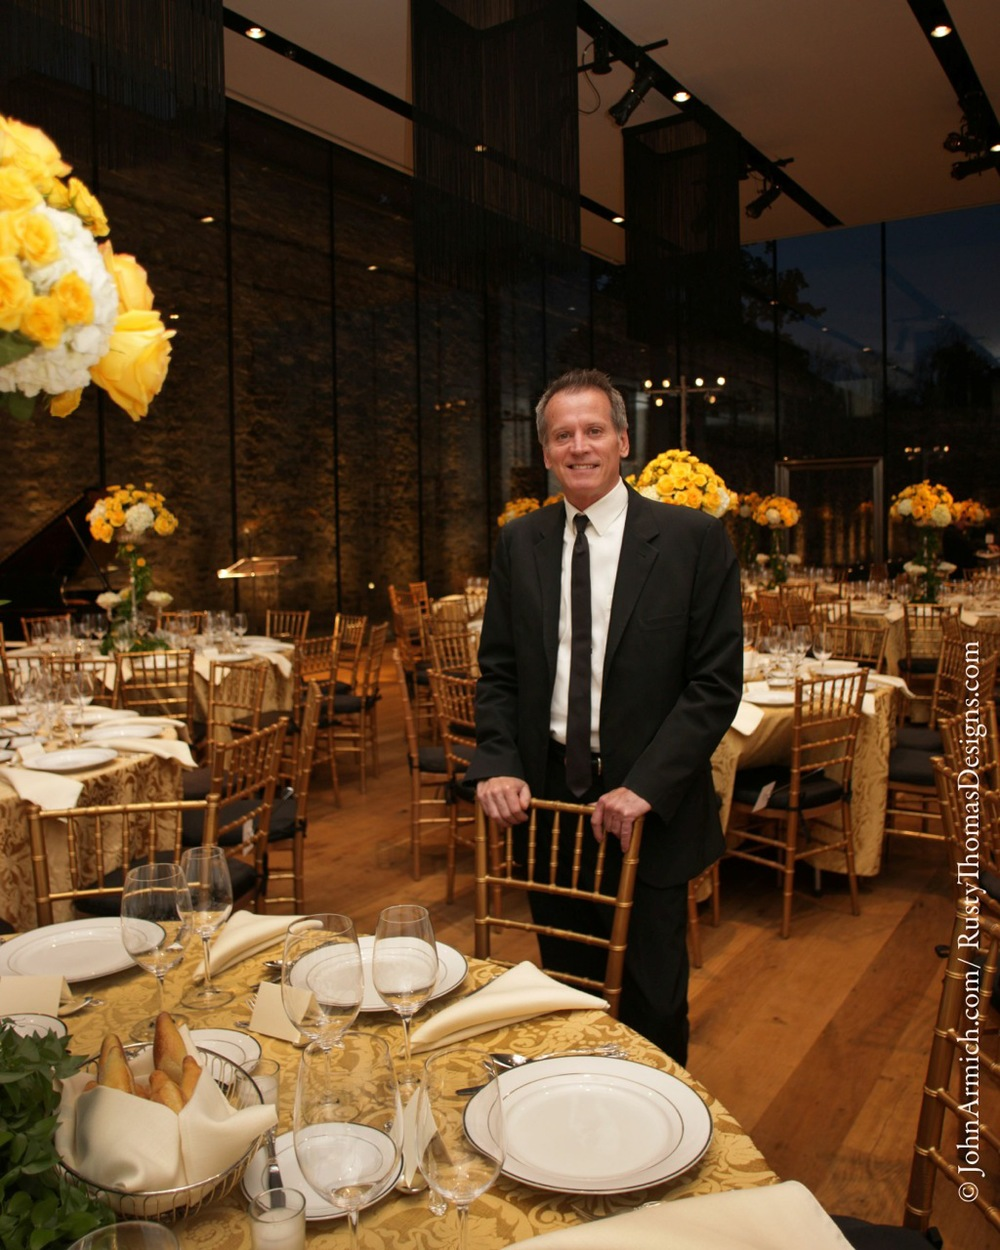 Eggsotic Events Michener Museum Lighting Grace Kelly Gala NJ NYC PA Bucks County Lighting 06.jpg